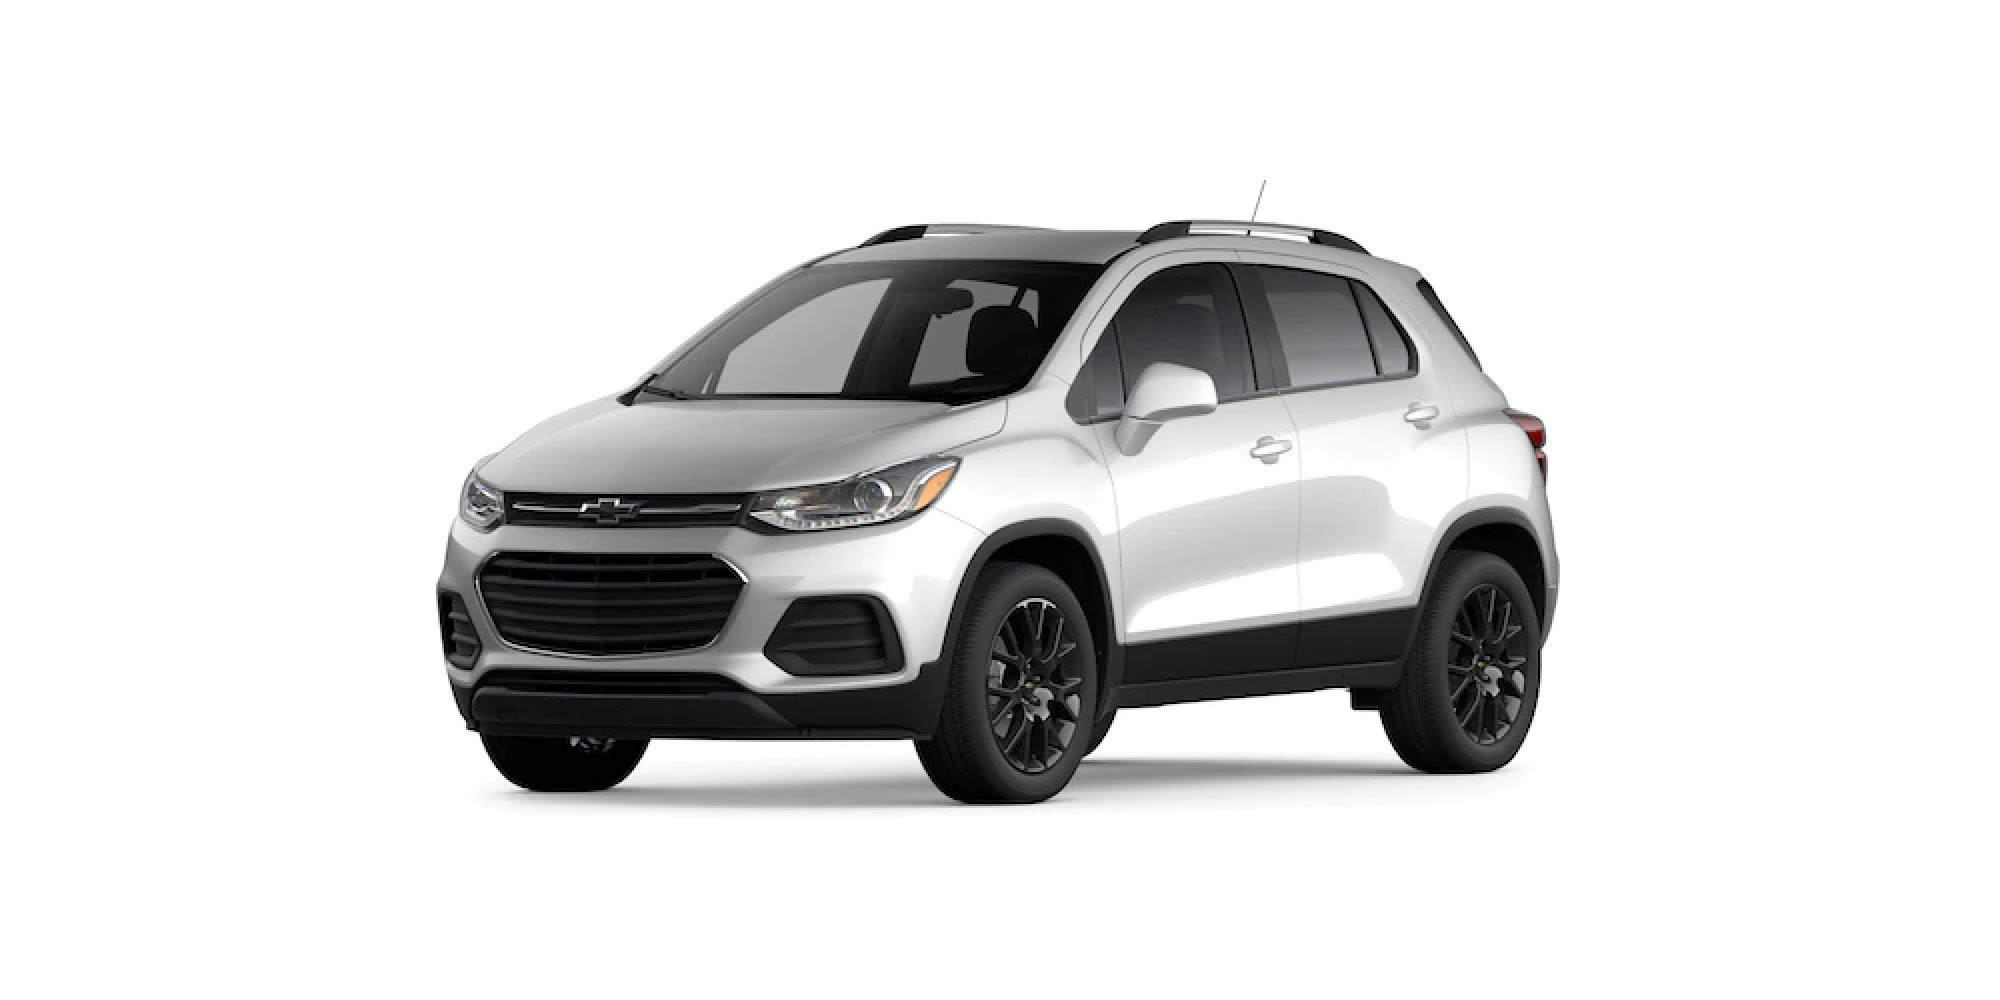 2021 Chevy Trax in IRIDESCENT PEARL TRICOAT